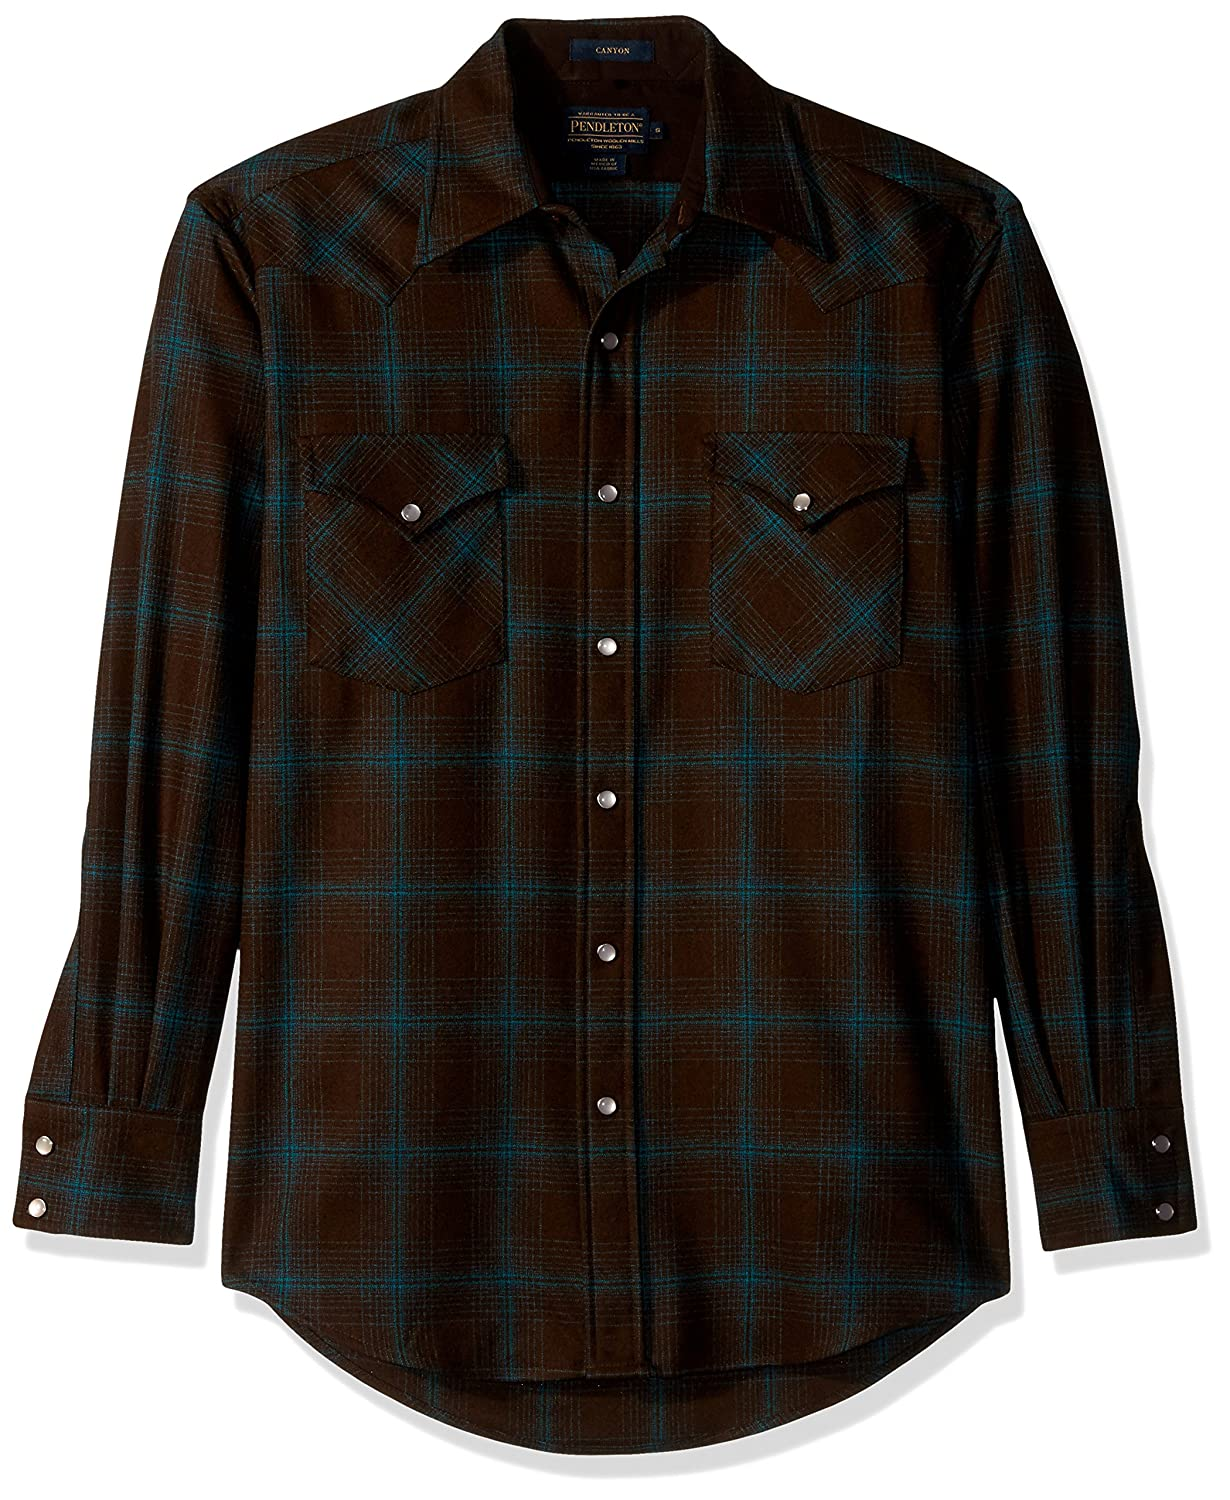 Pendleton メンズ長袖キャニオンシャツ B06XPPDMWS XL Brown/Turquoise Ombre Brown/Turquoise Ombre XL